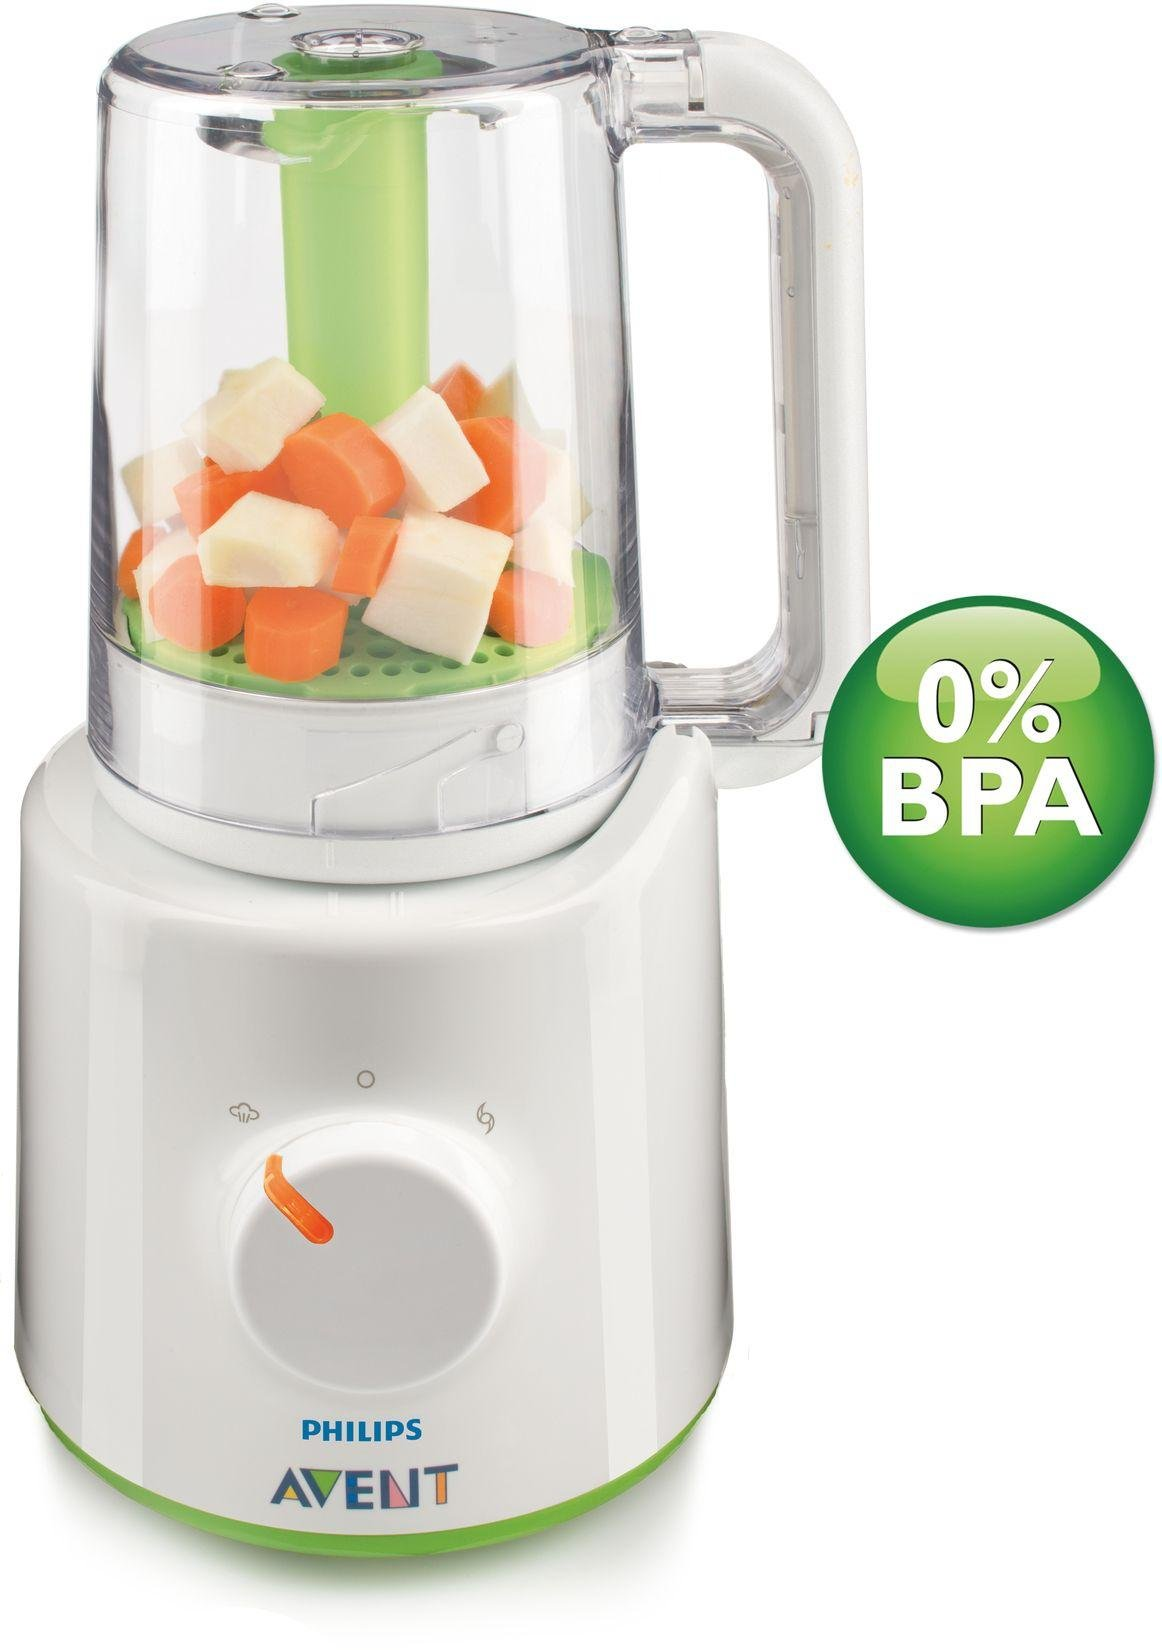 Philips Avent Combined Baby Food Steamer/Blender SCF870/21